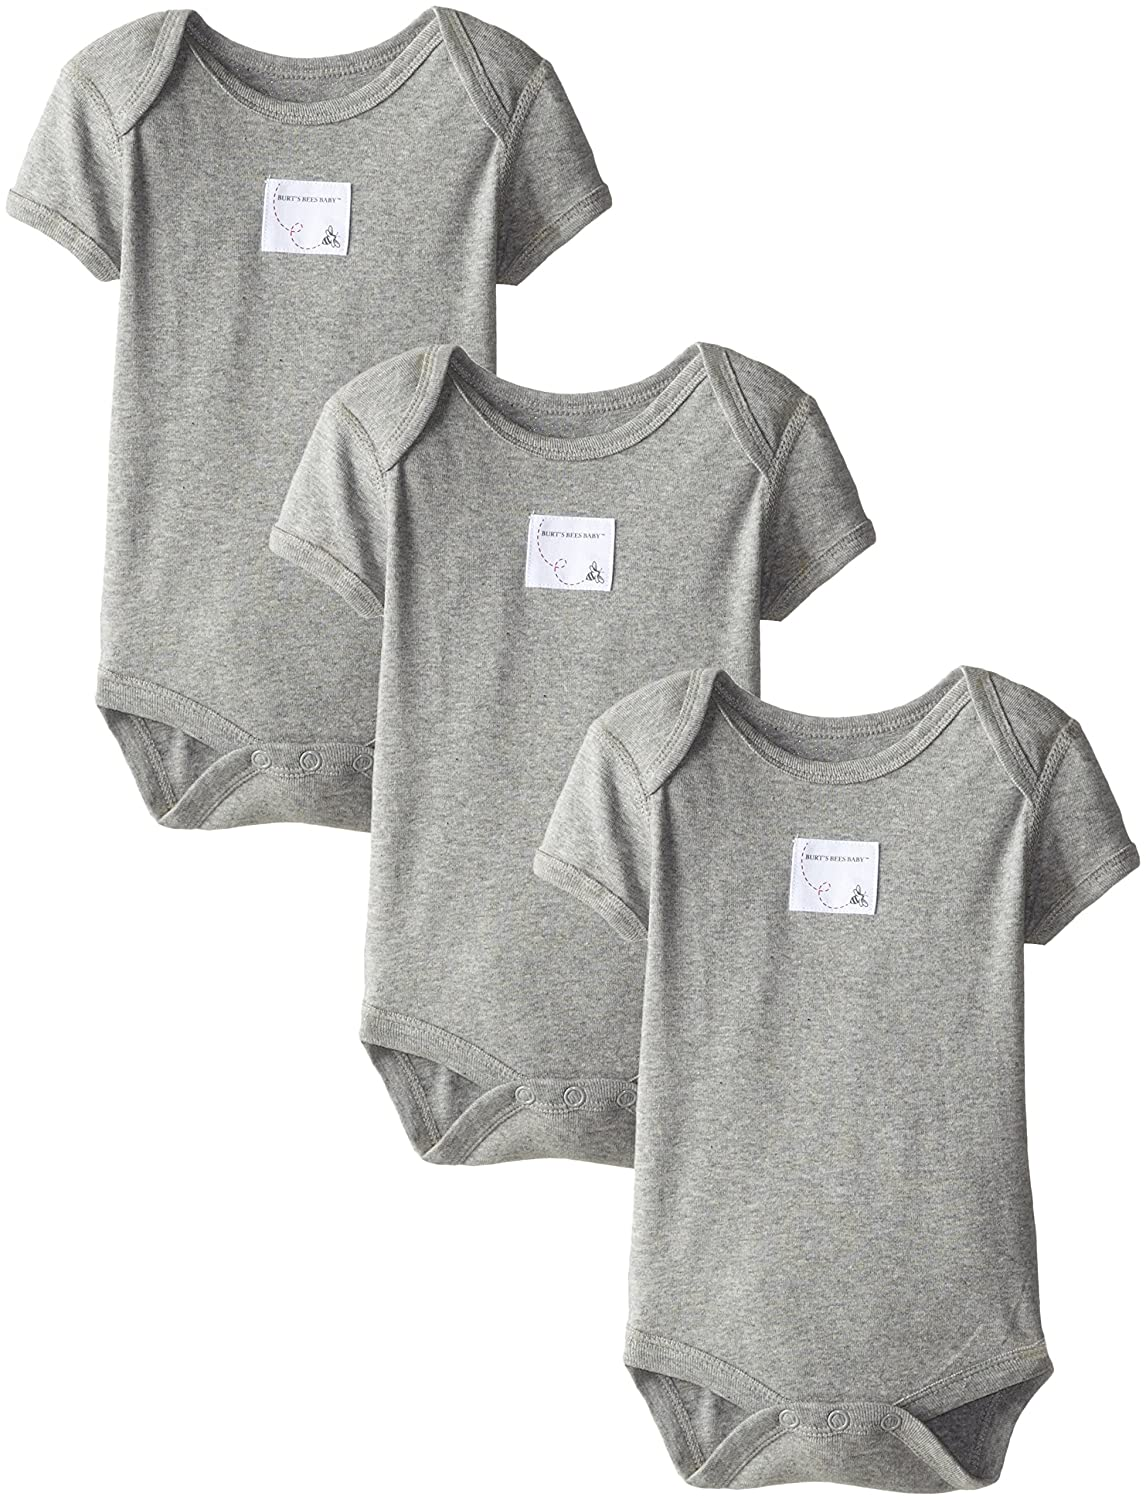 Burt's Bees Baby Organic Set of 3 Bee Essentials Short Sleeve Bodysuits